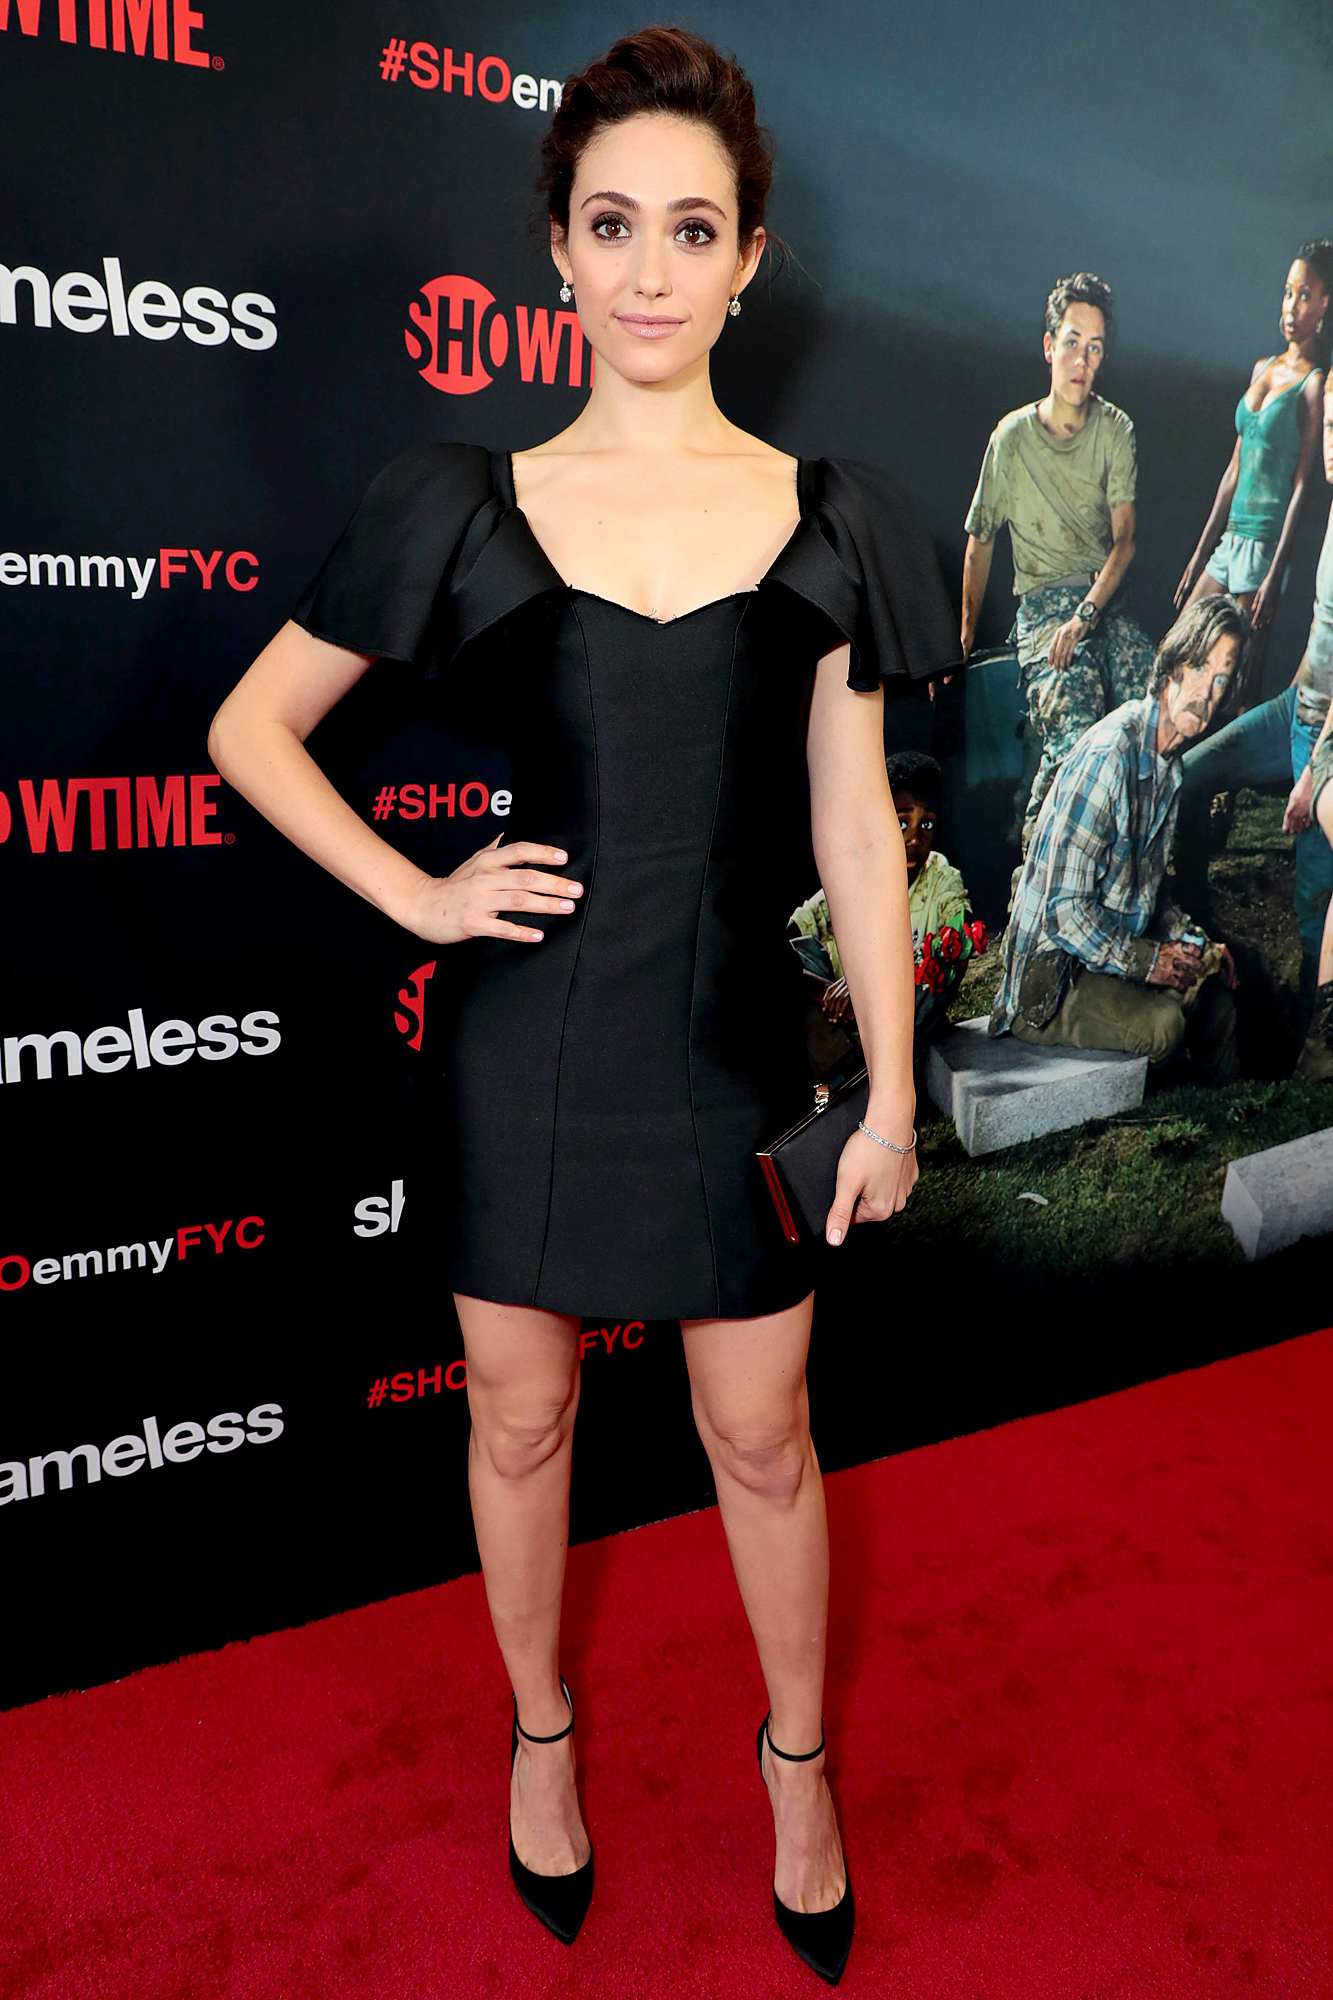 Showtime Emmy FYC screening of Shameless at the Linwood Dunn Theatre, Hollywood, CA, USA - 24 May 2018